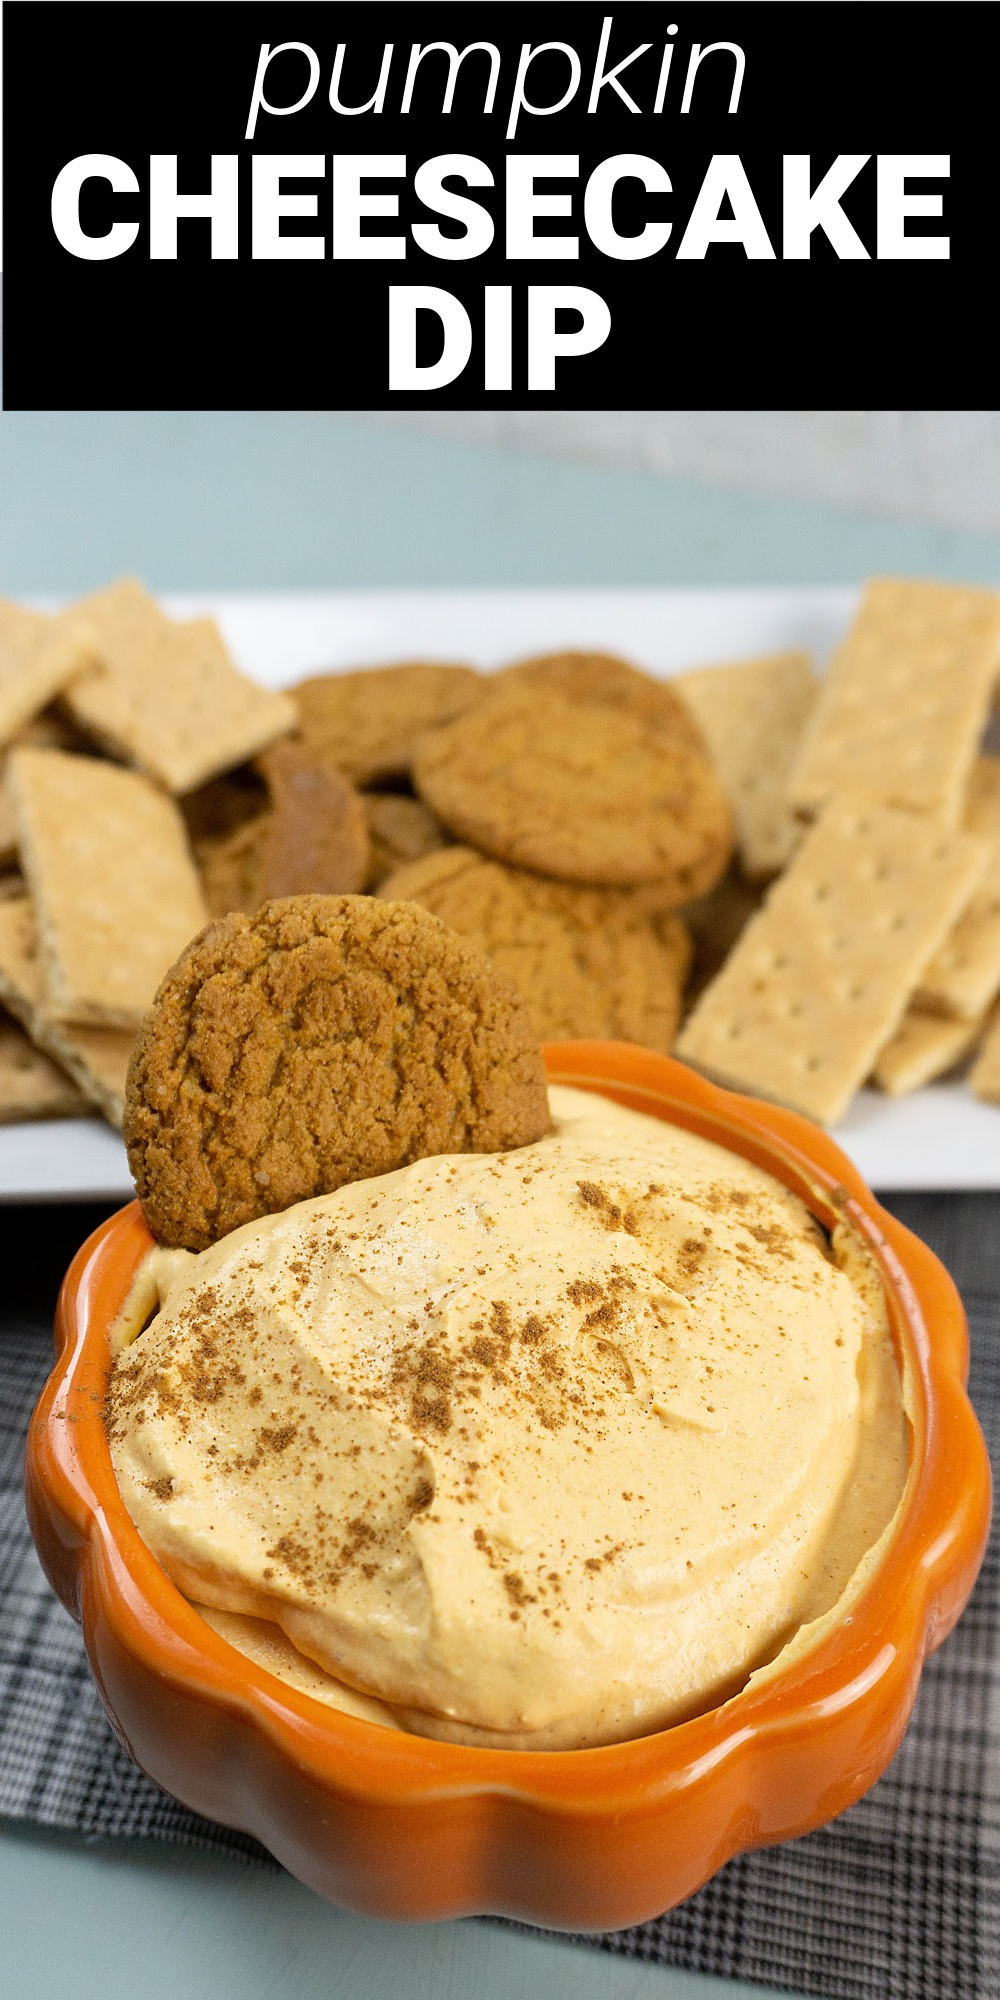 This easy Pumpkin Cheesecake Dip is a creamy snack full of everyone's favorite fall flavors. Made with just 4 ingredients it can be a sweet appetizer or fun dessert.